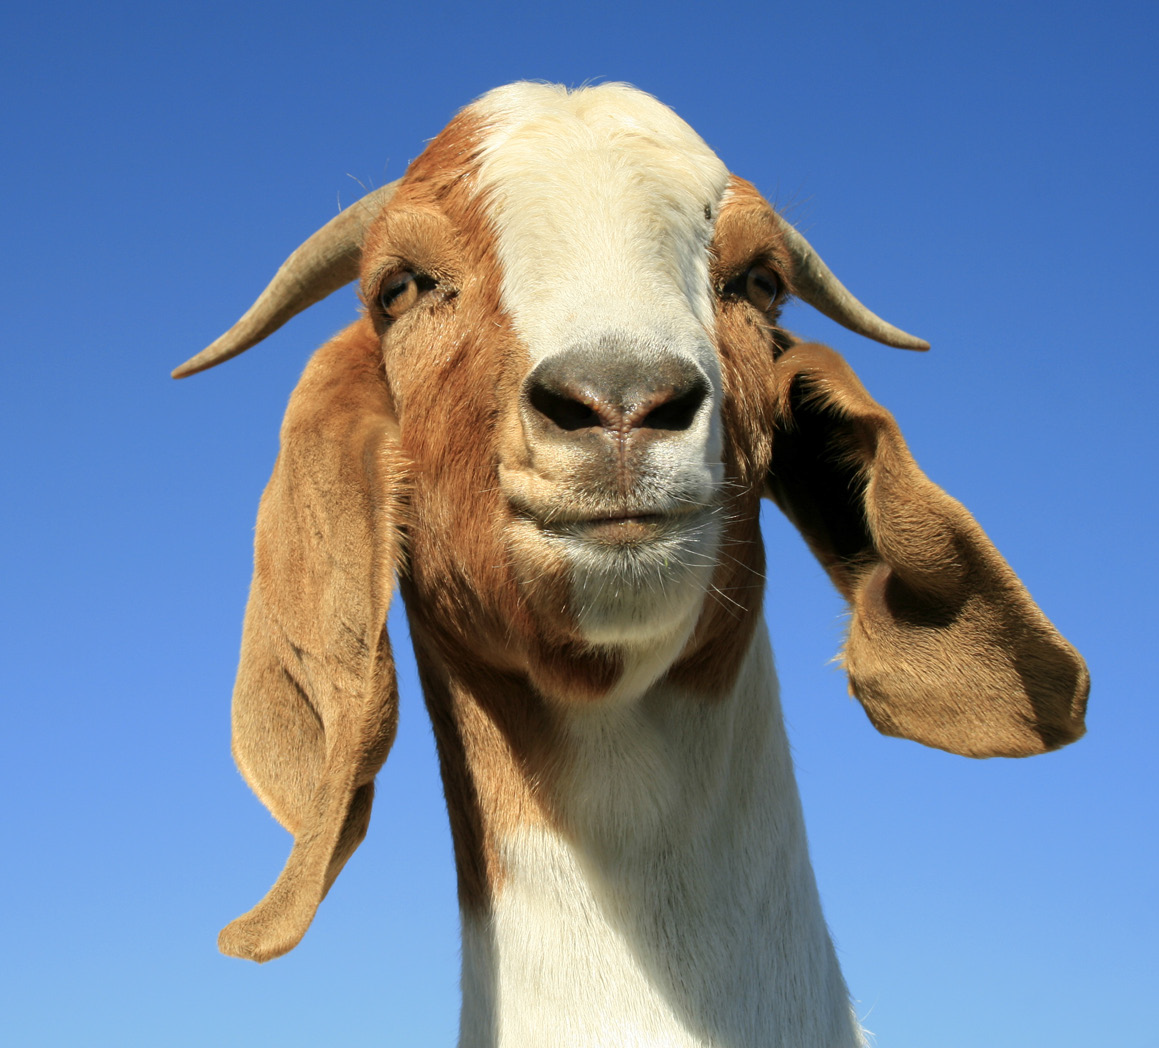 Goat dating site